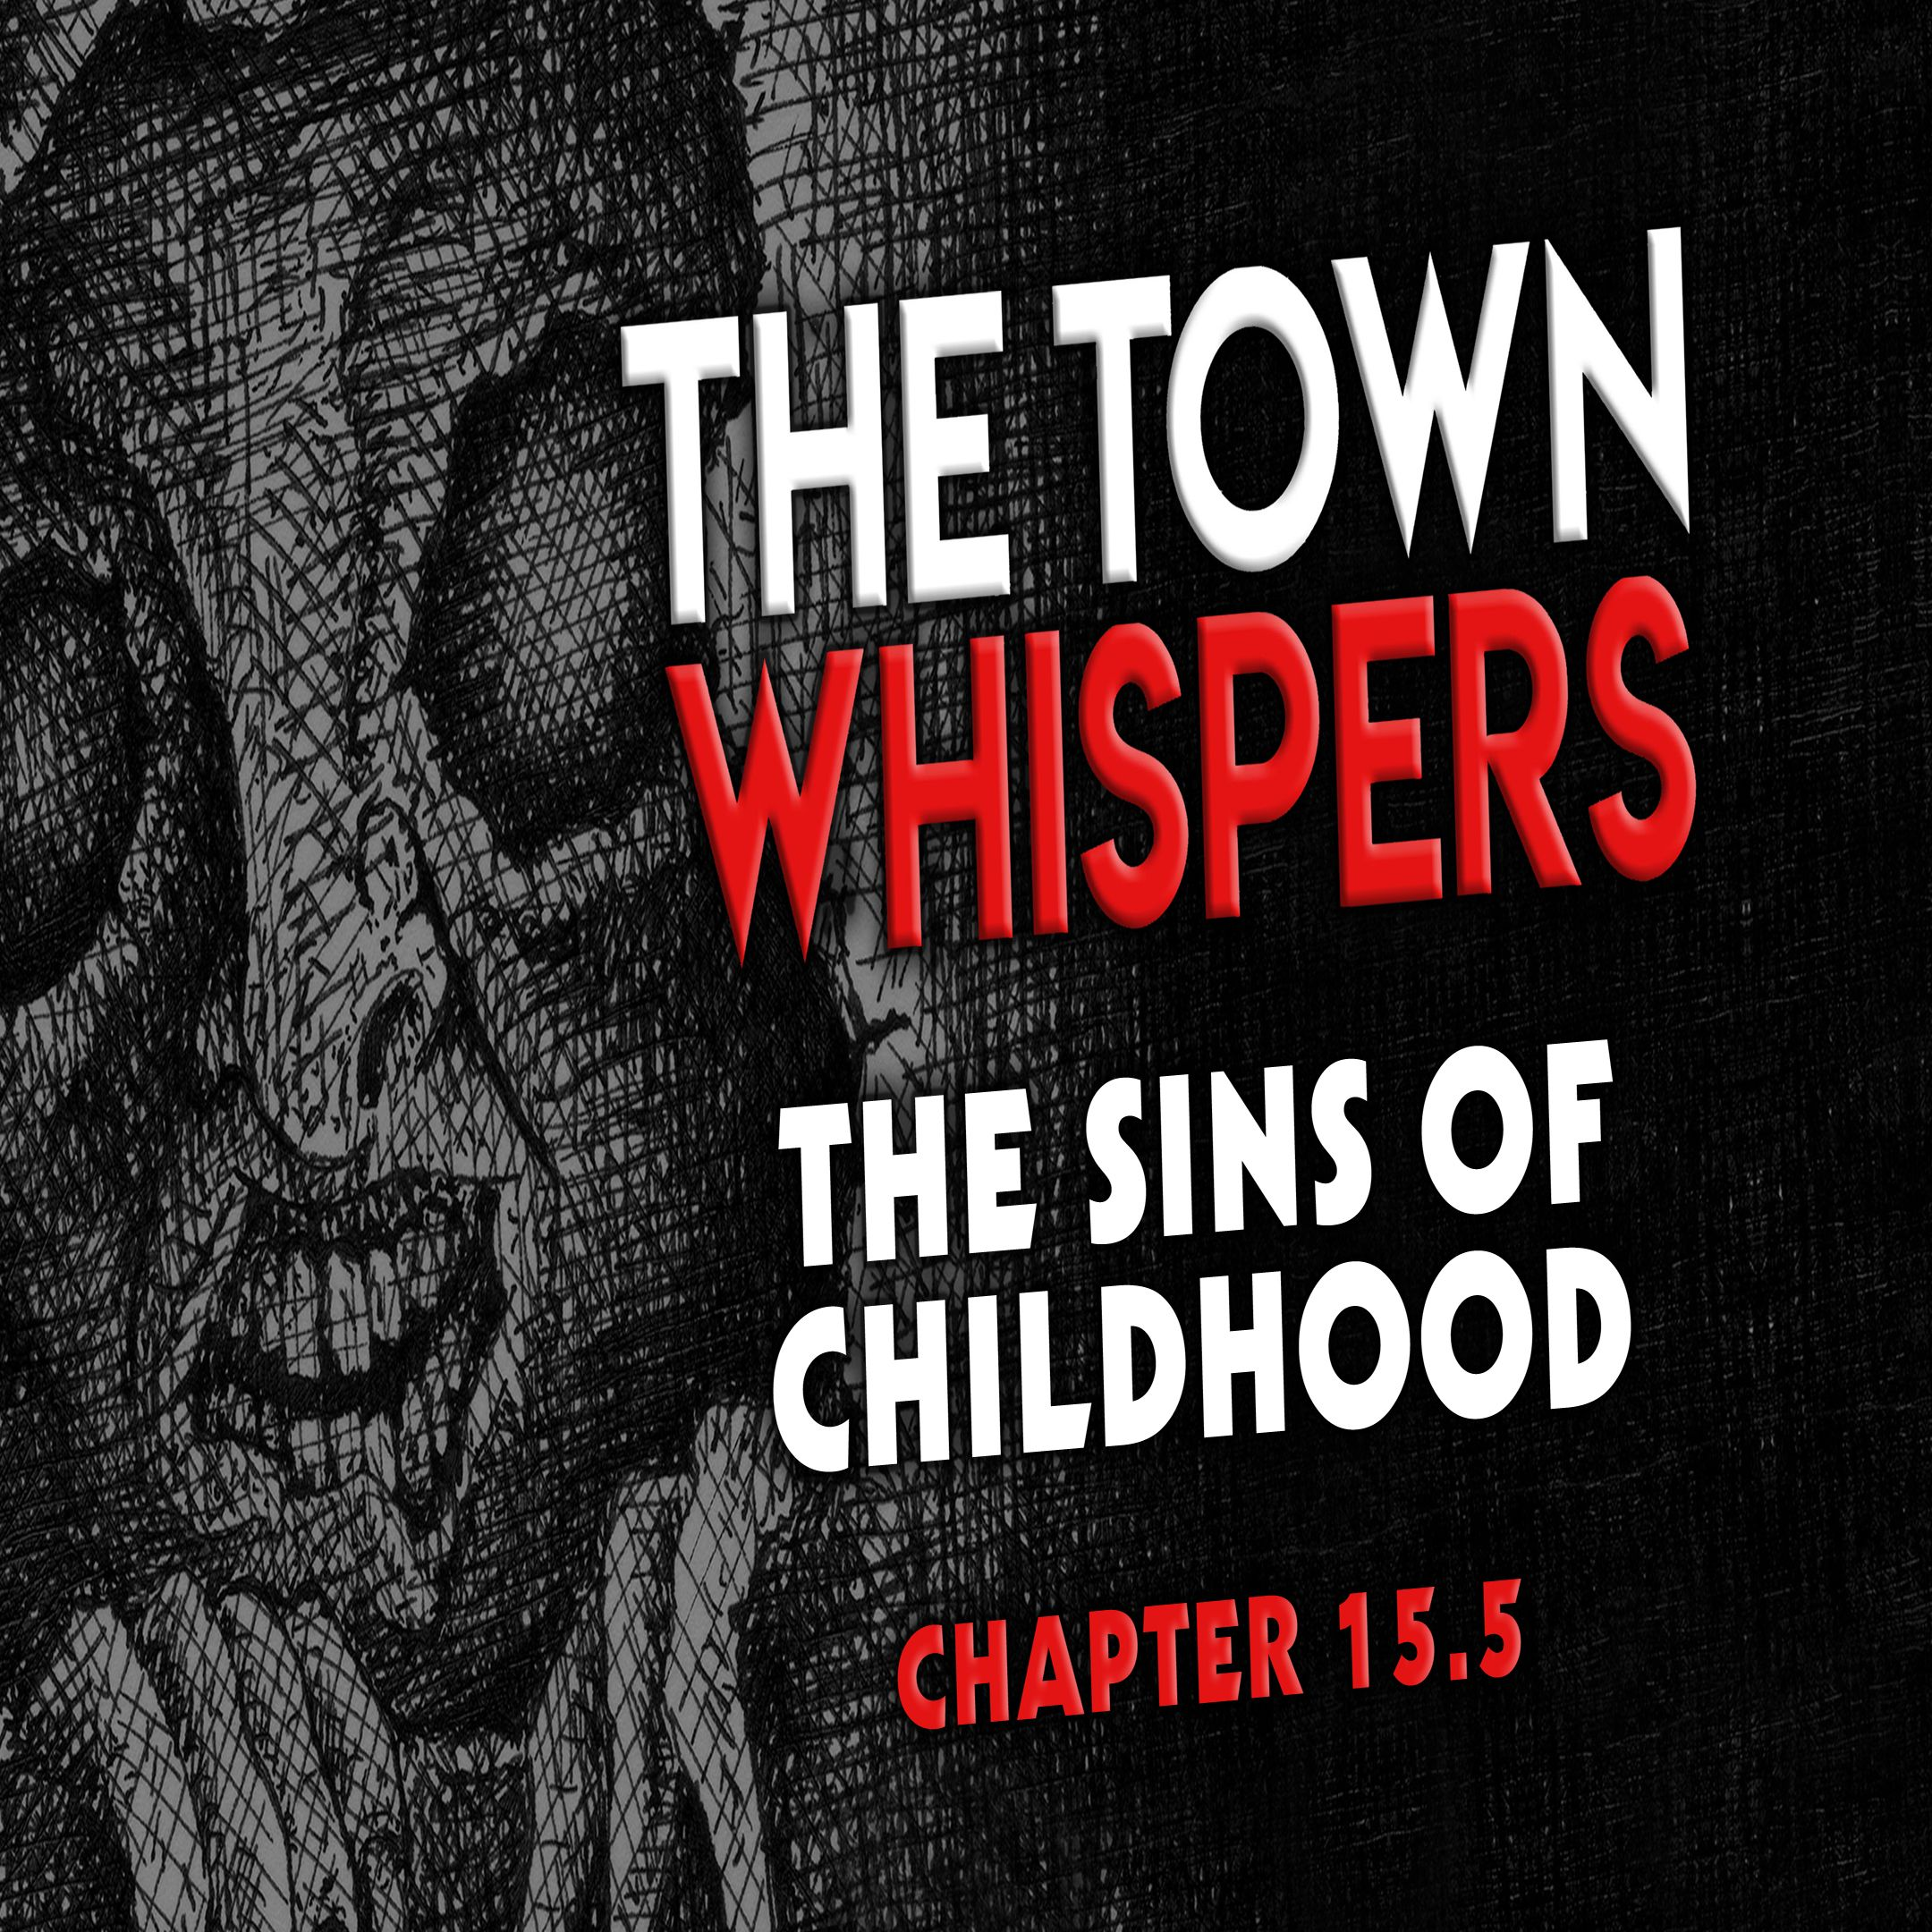 Chapter 15.5: The Sins of Childhood